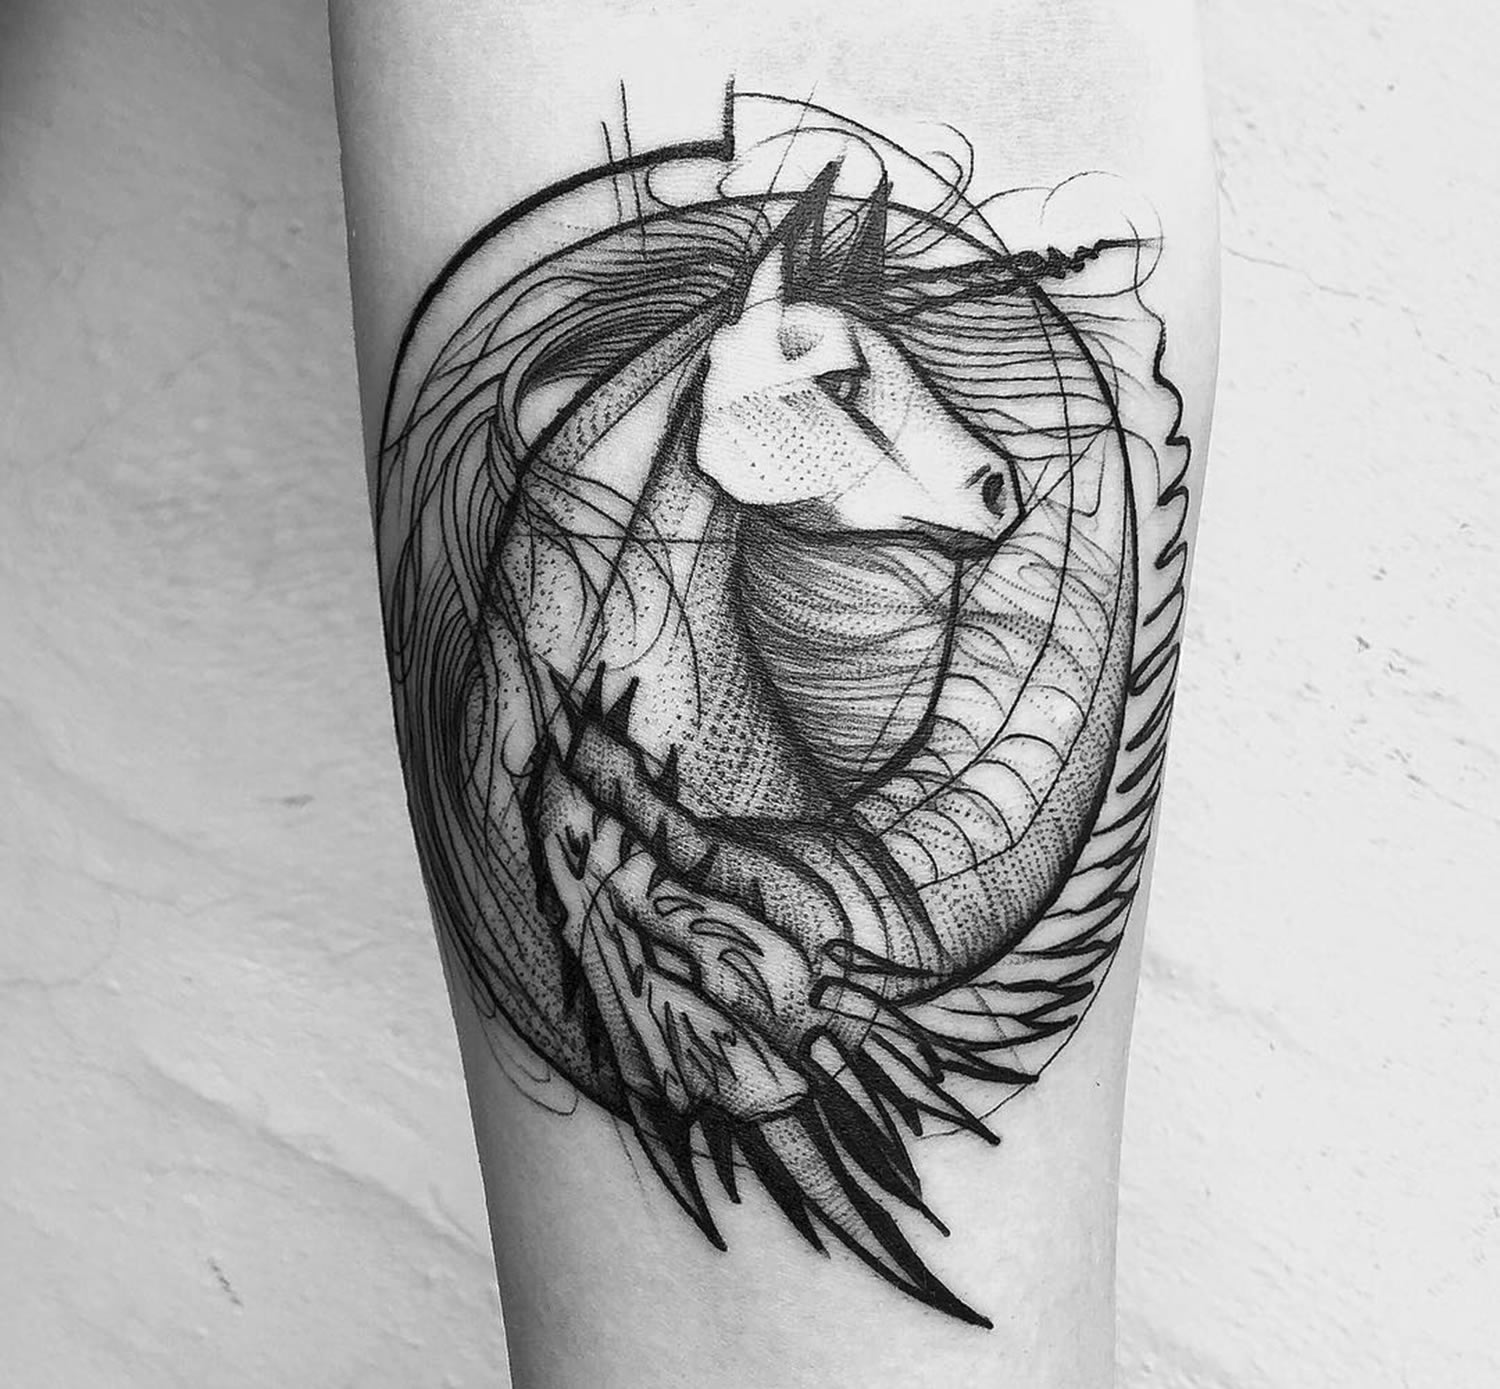 horse tattoo, linework, black ink